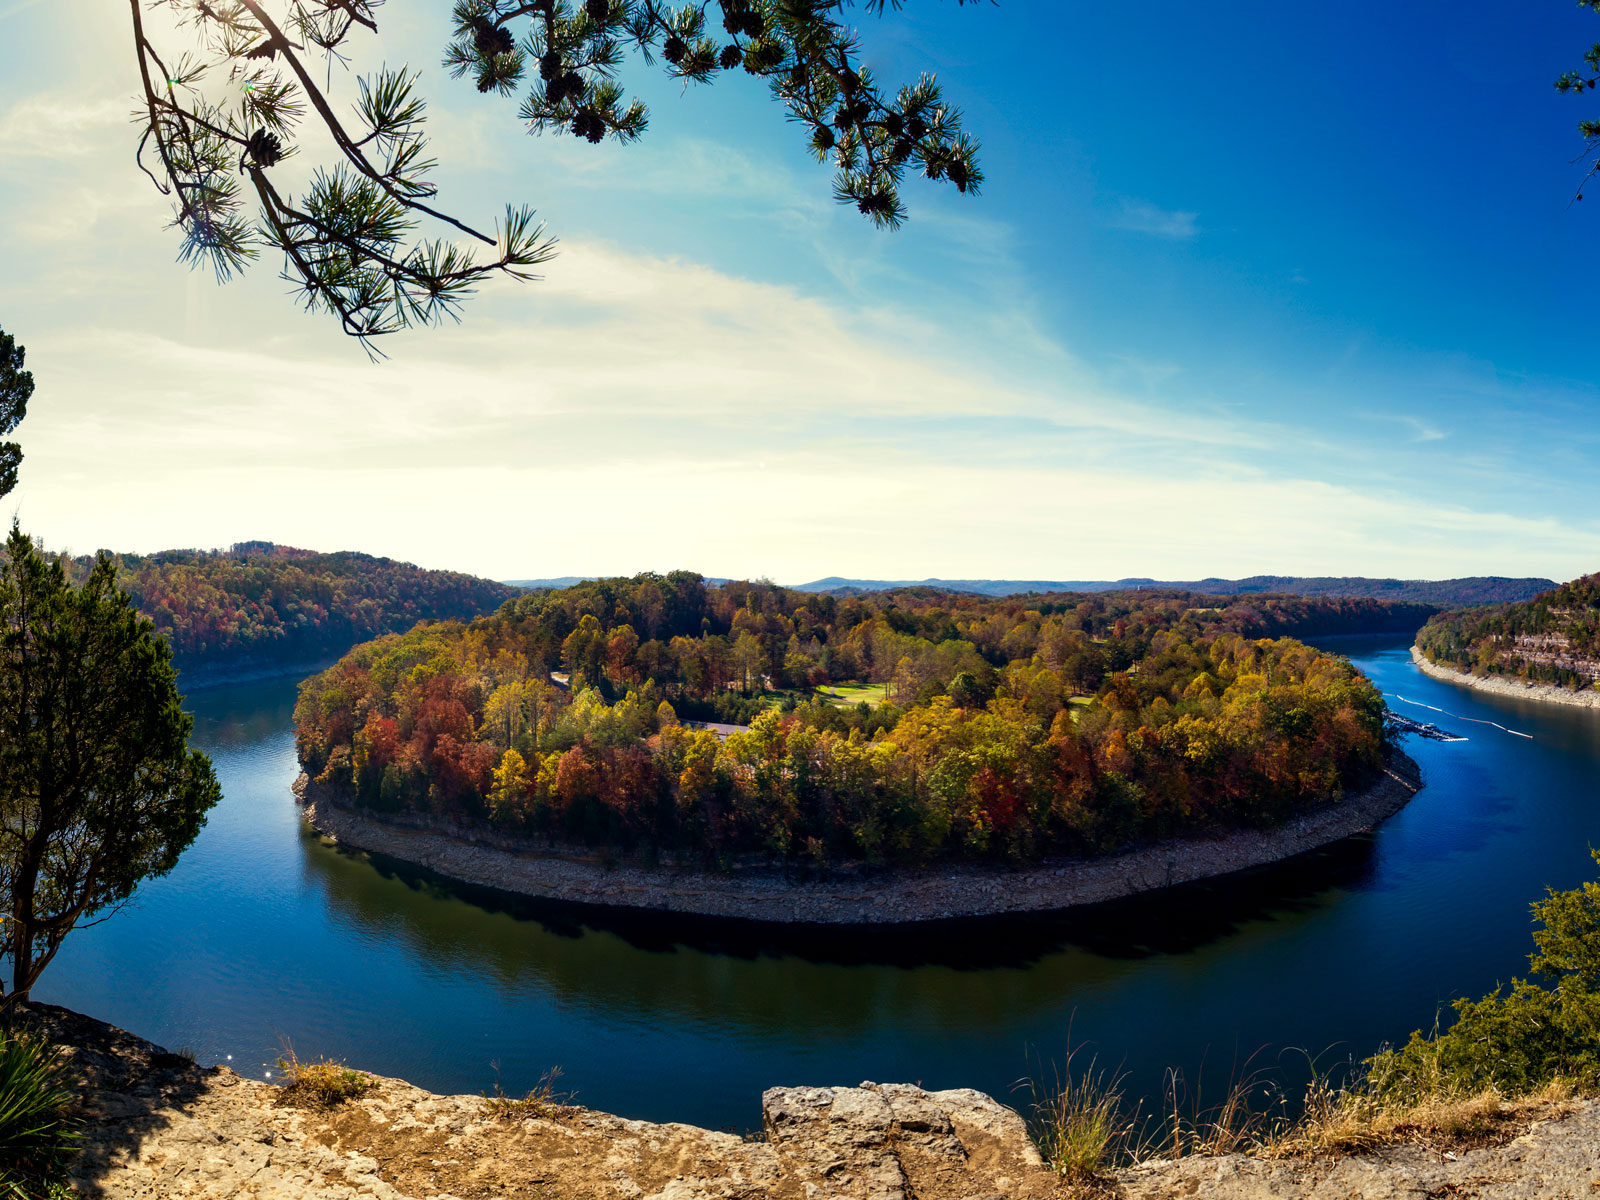 lake-cumberland-kentucky-FT-BLOG0219.jpg